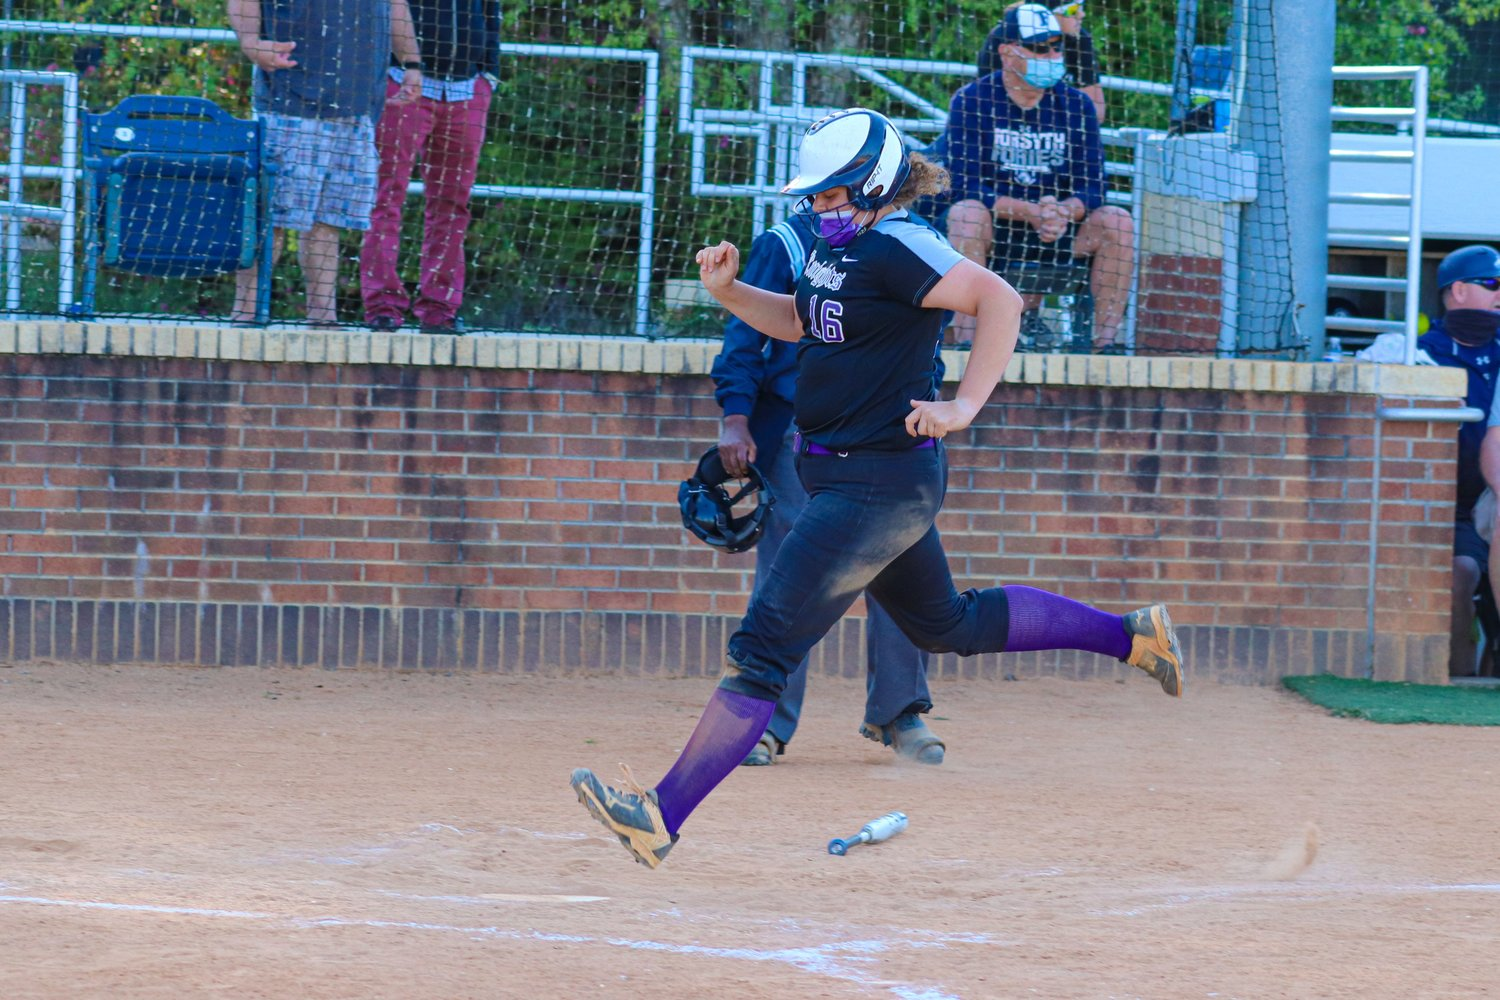 Chatham Charter senior catcher Morgan Lineberry (16) scores on an error in the sixth inning of her team's 4-3 loss to Forsyth Country Day on Thursday, April 15.